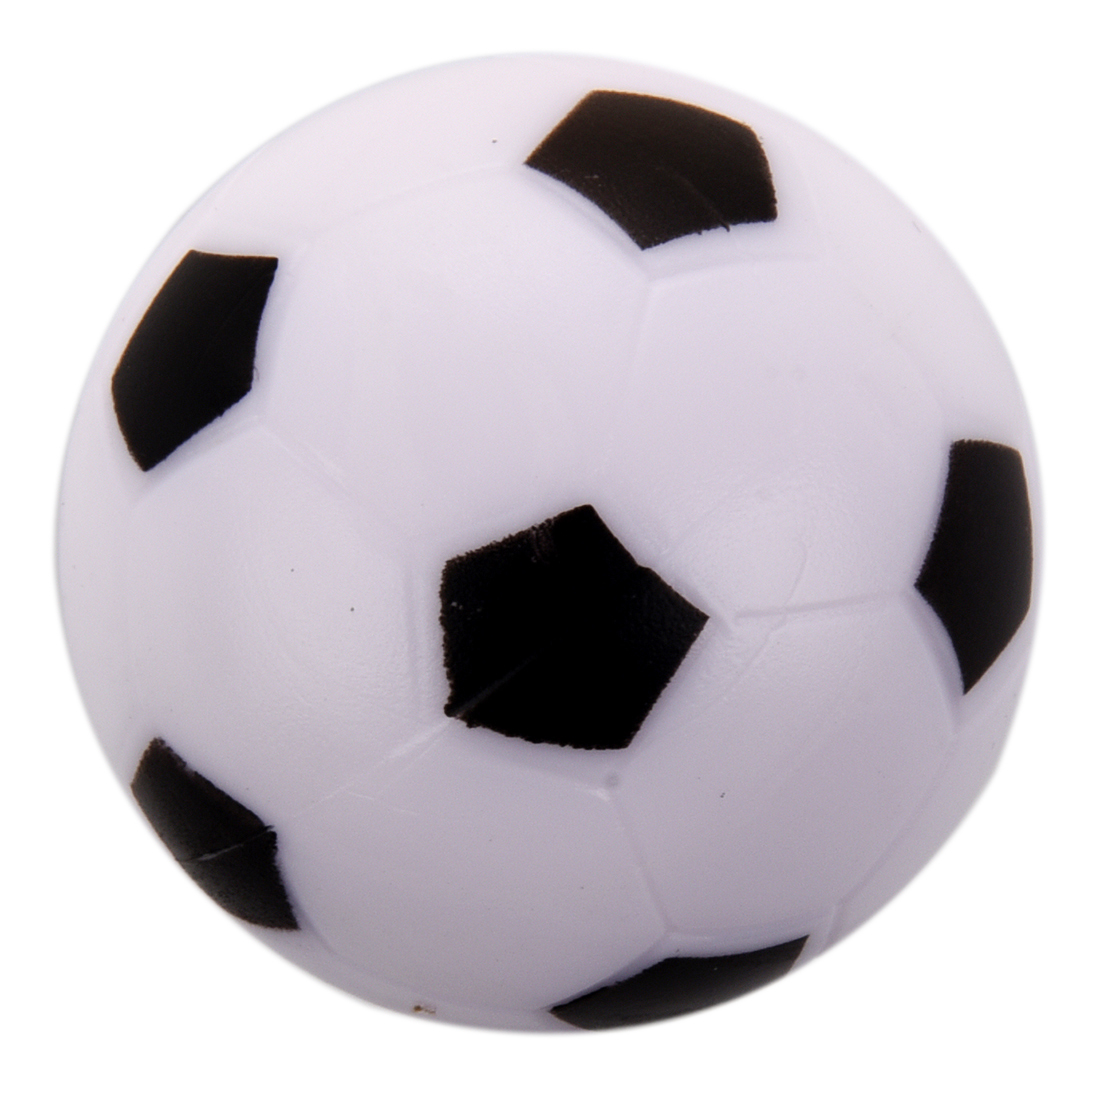 Small Soccer Football Table Ball Plastic Hard Homo Logue Children Game Toy Black White